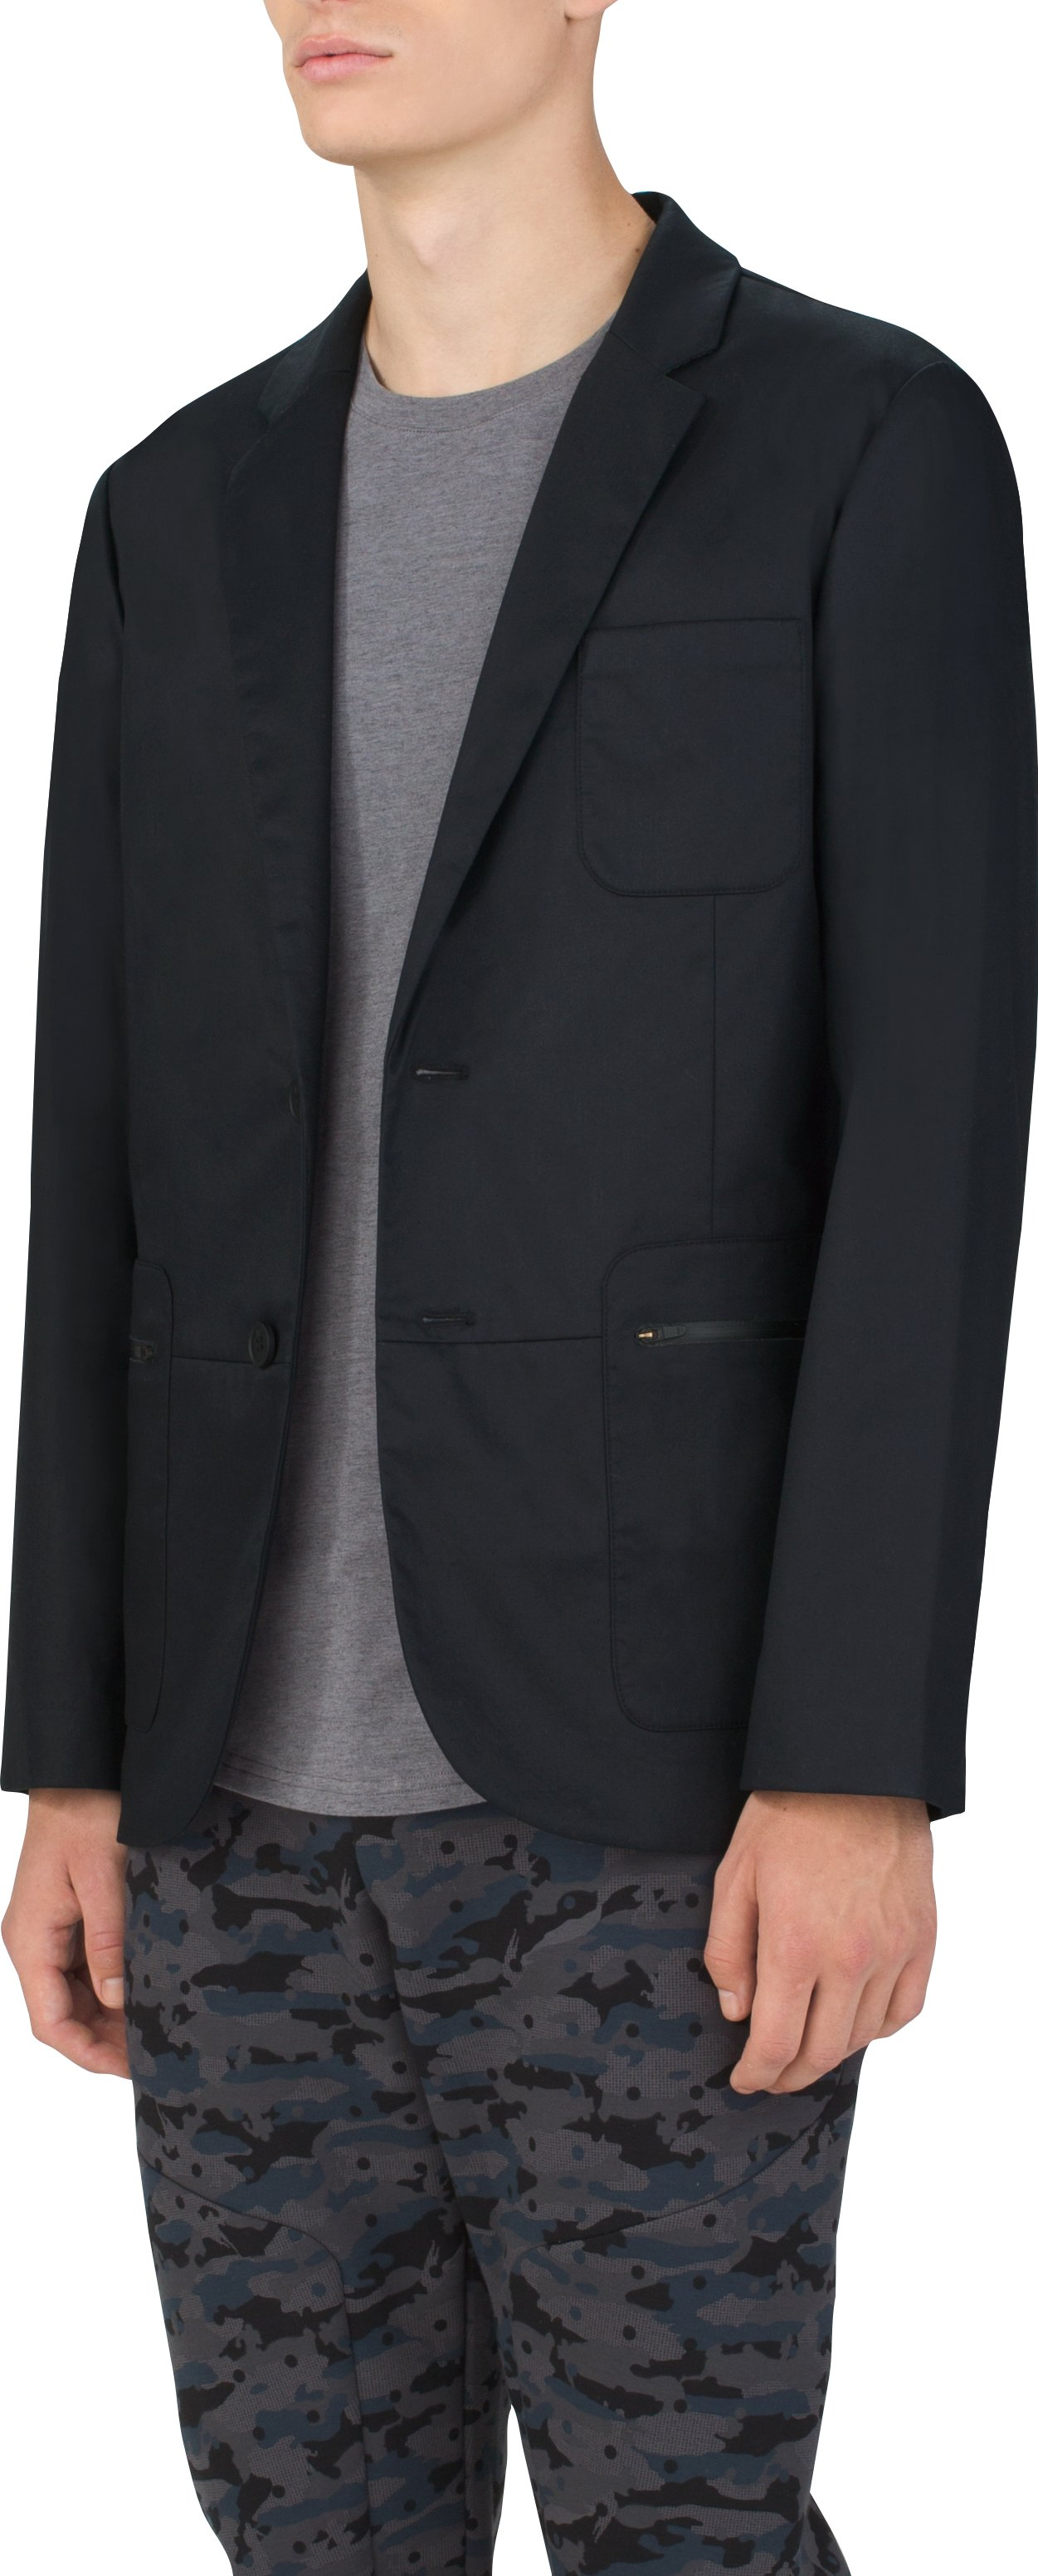 Men's UAS Draftday Rowing Blazer, Black